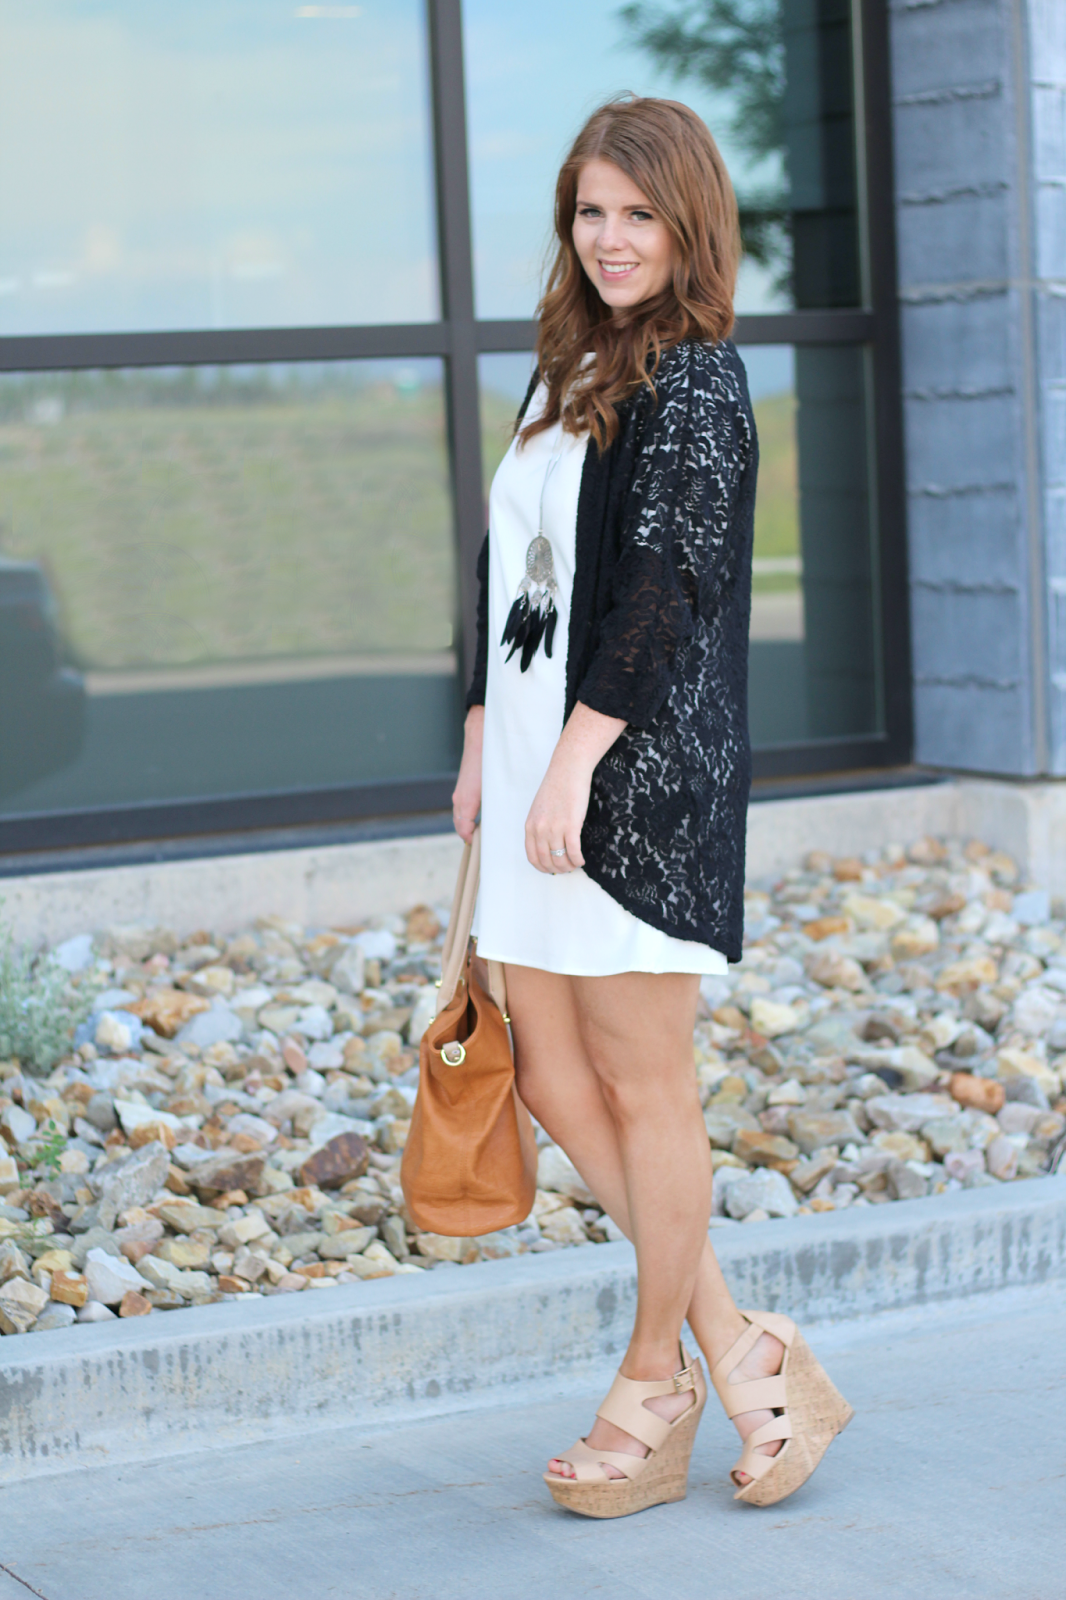 White Dress with a touch of black lace. graphic